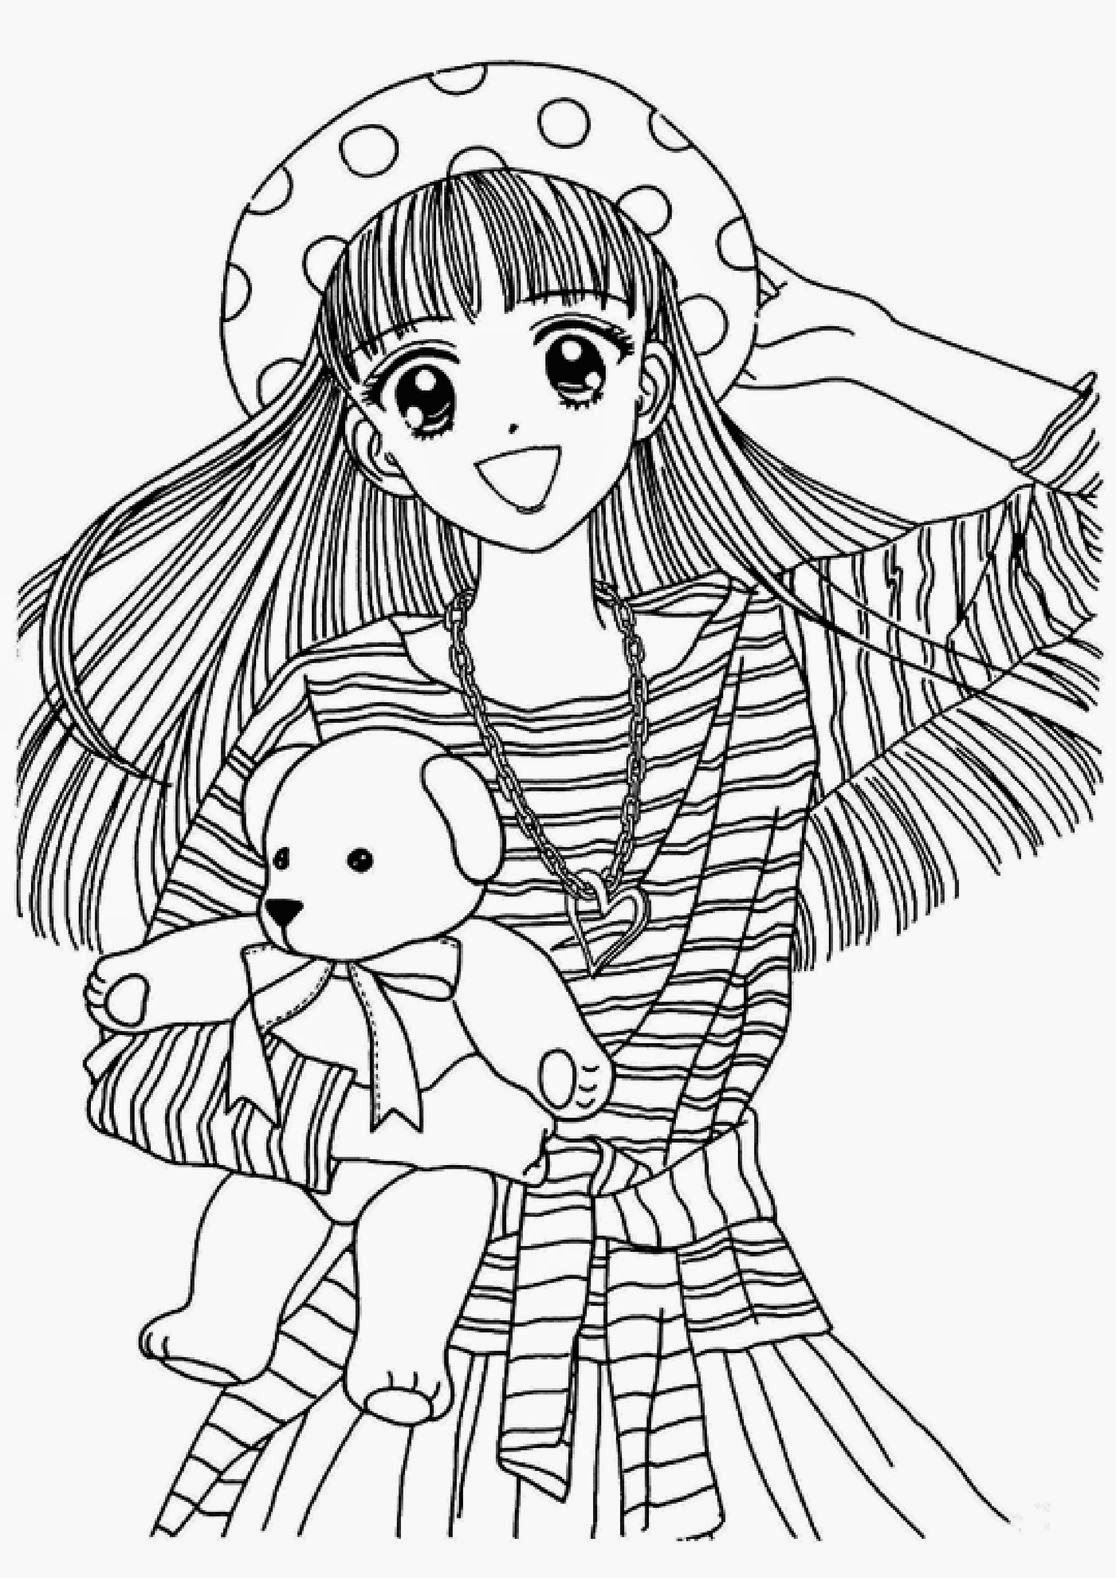 free anime coloring pages to print coloring pages anime coloring pages free and printable pages free coloring anime to print